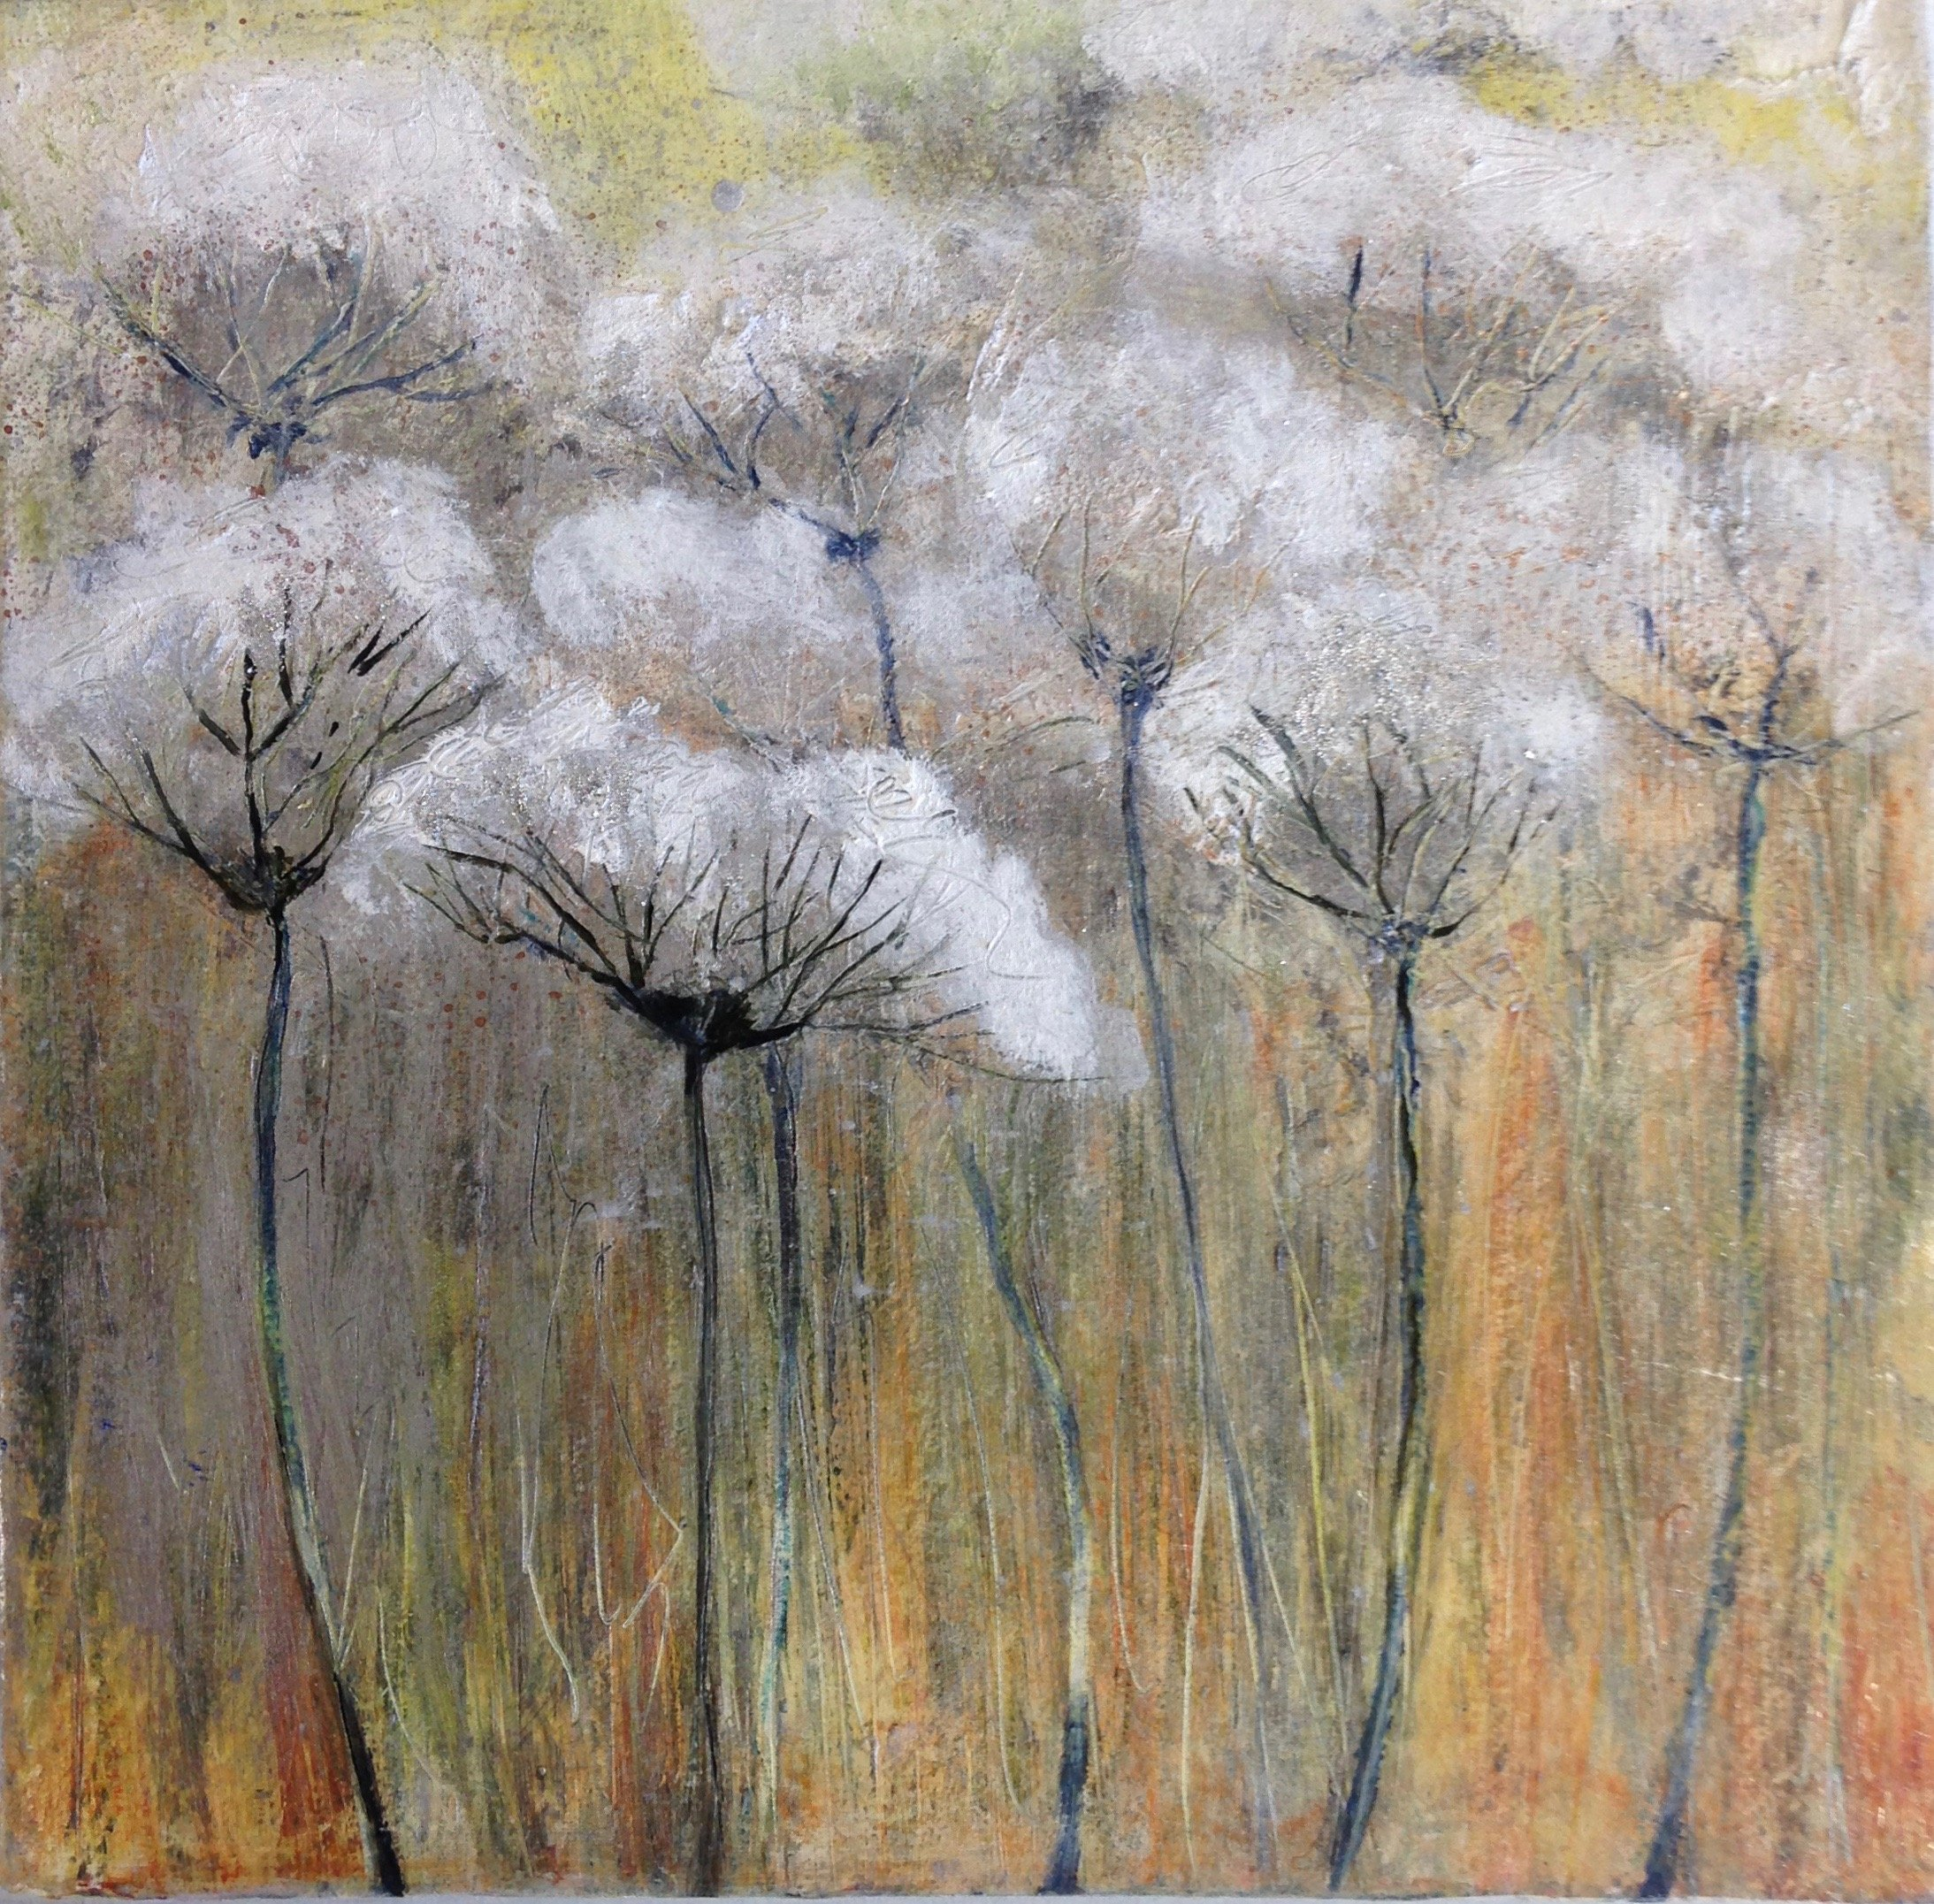 cow parsley 2 £30